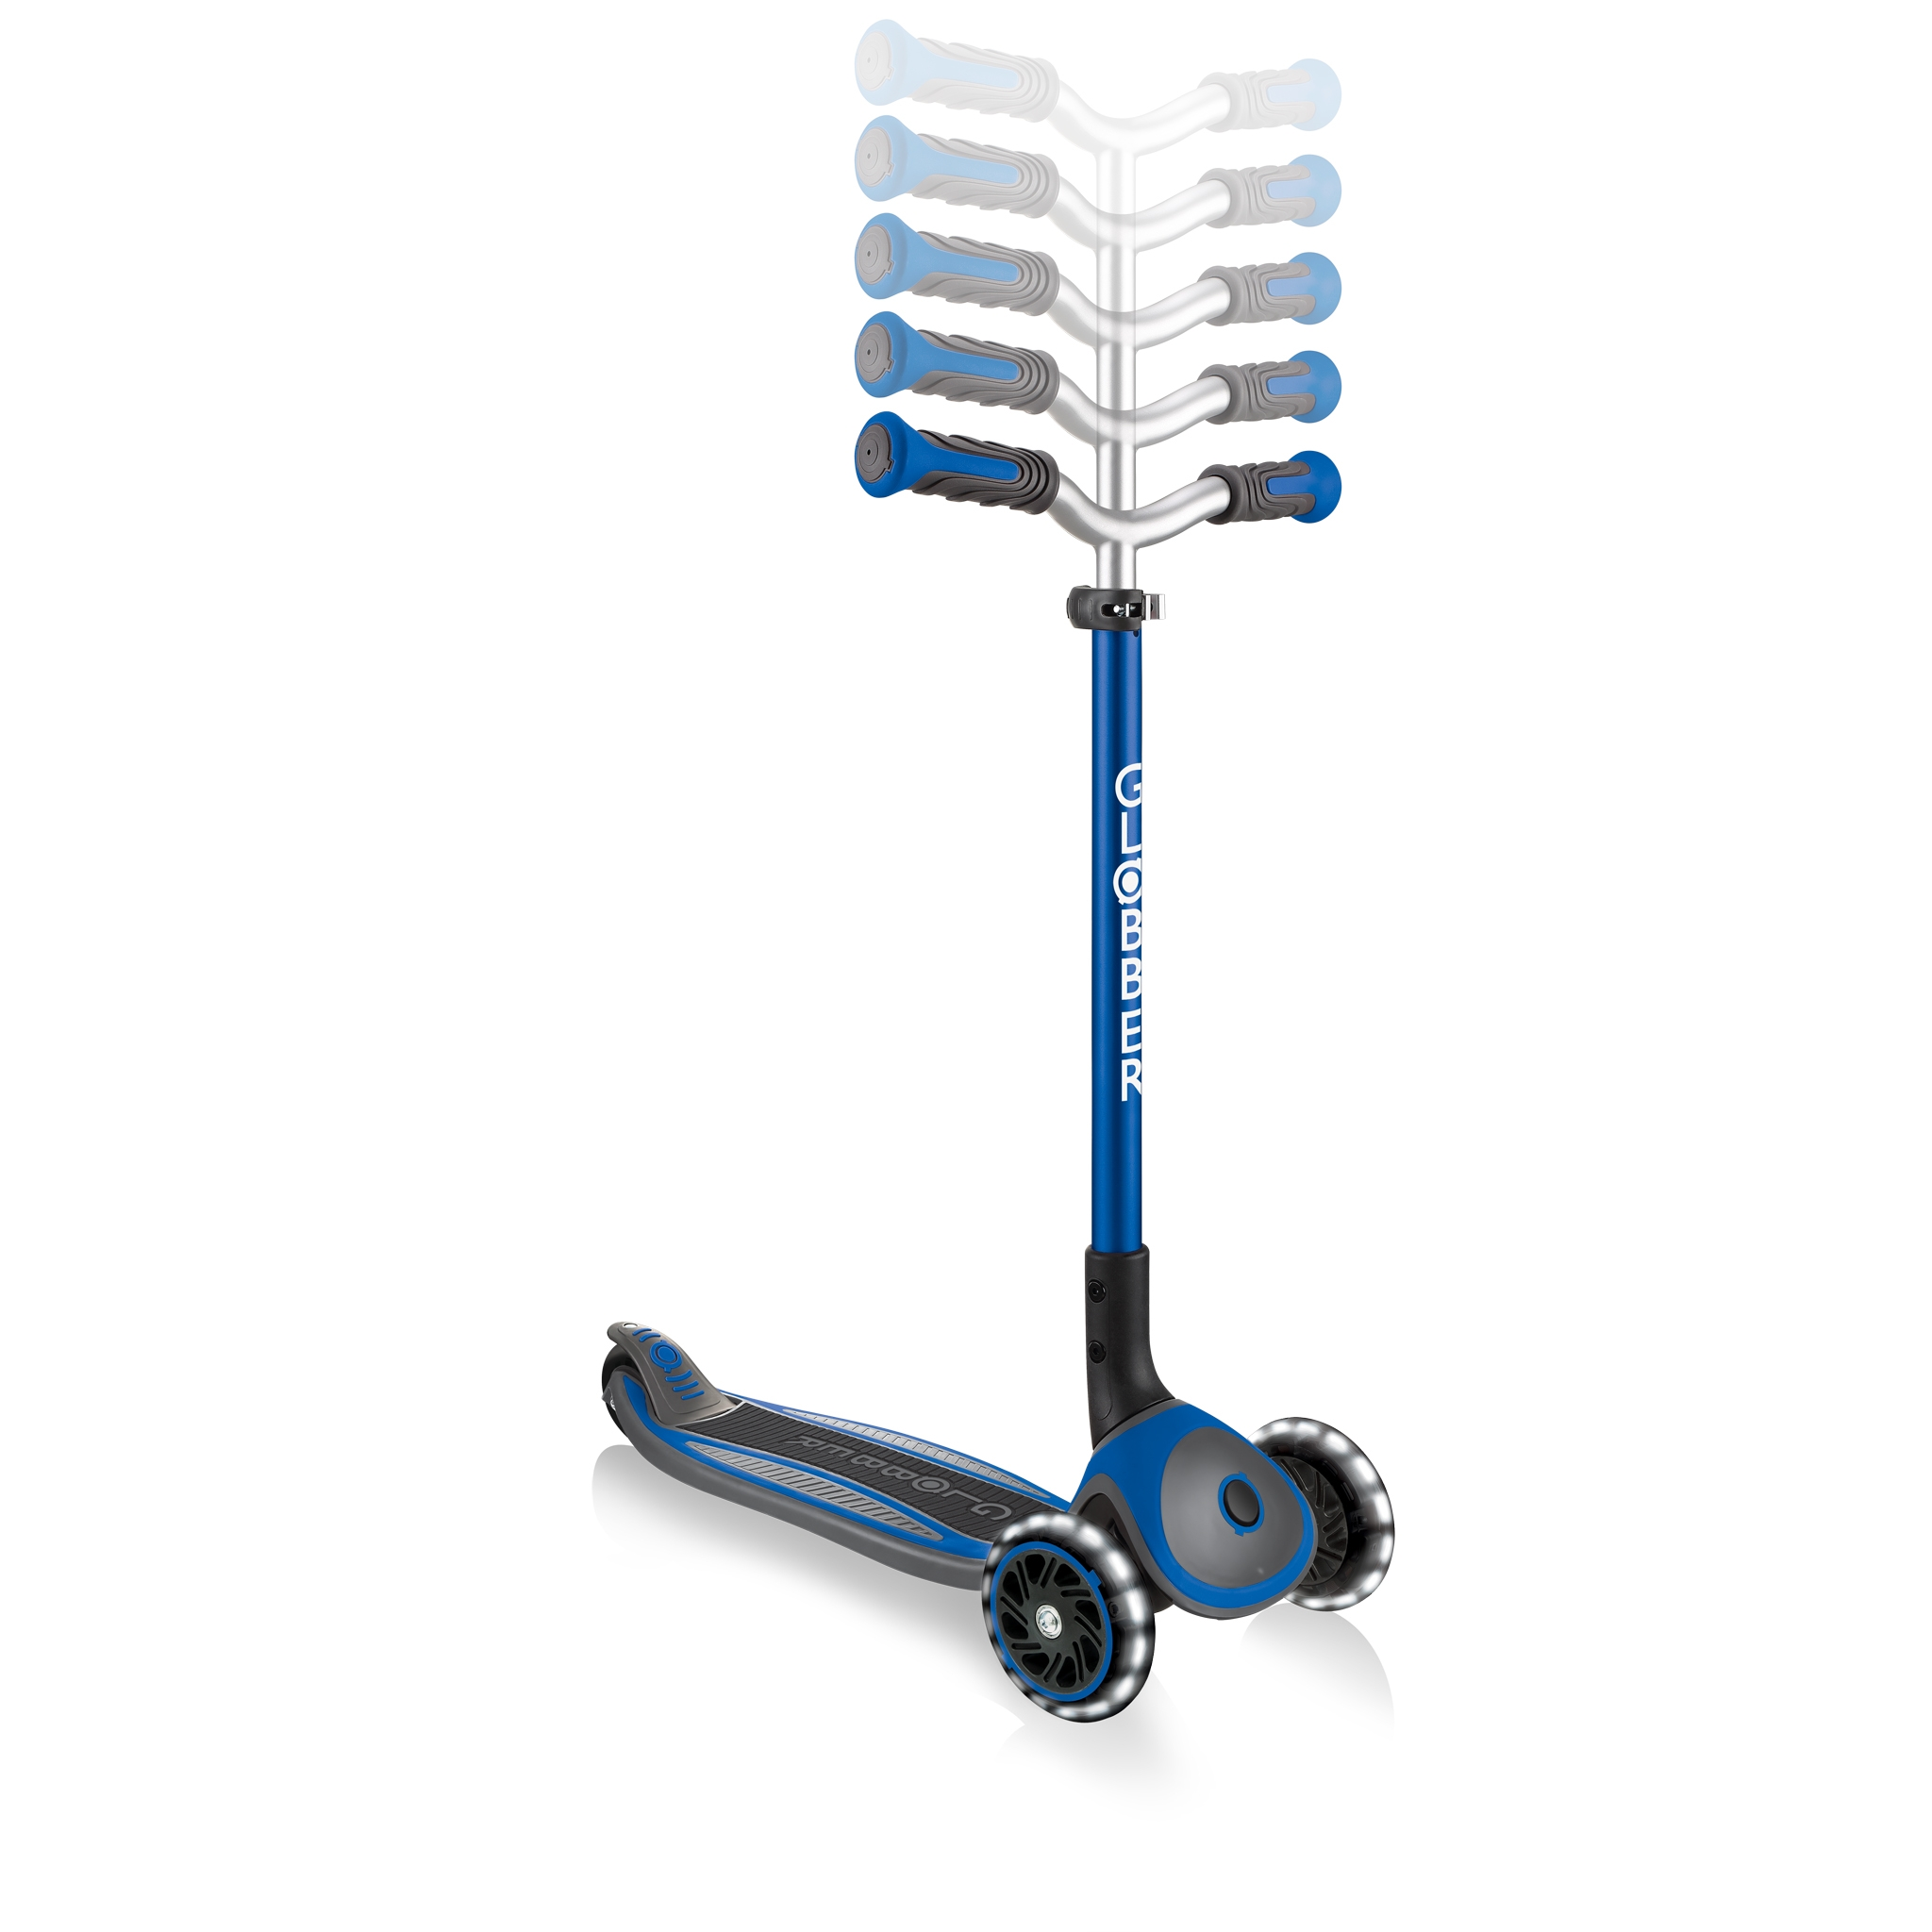 Globber-MASTER-LIGHTS-premium-3-wheel-foldable-light-up-scooters-for-kids-with-5-height-adjustable-T-bar_dark-blue 4